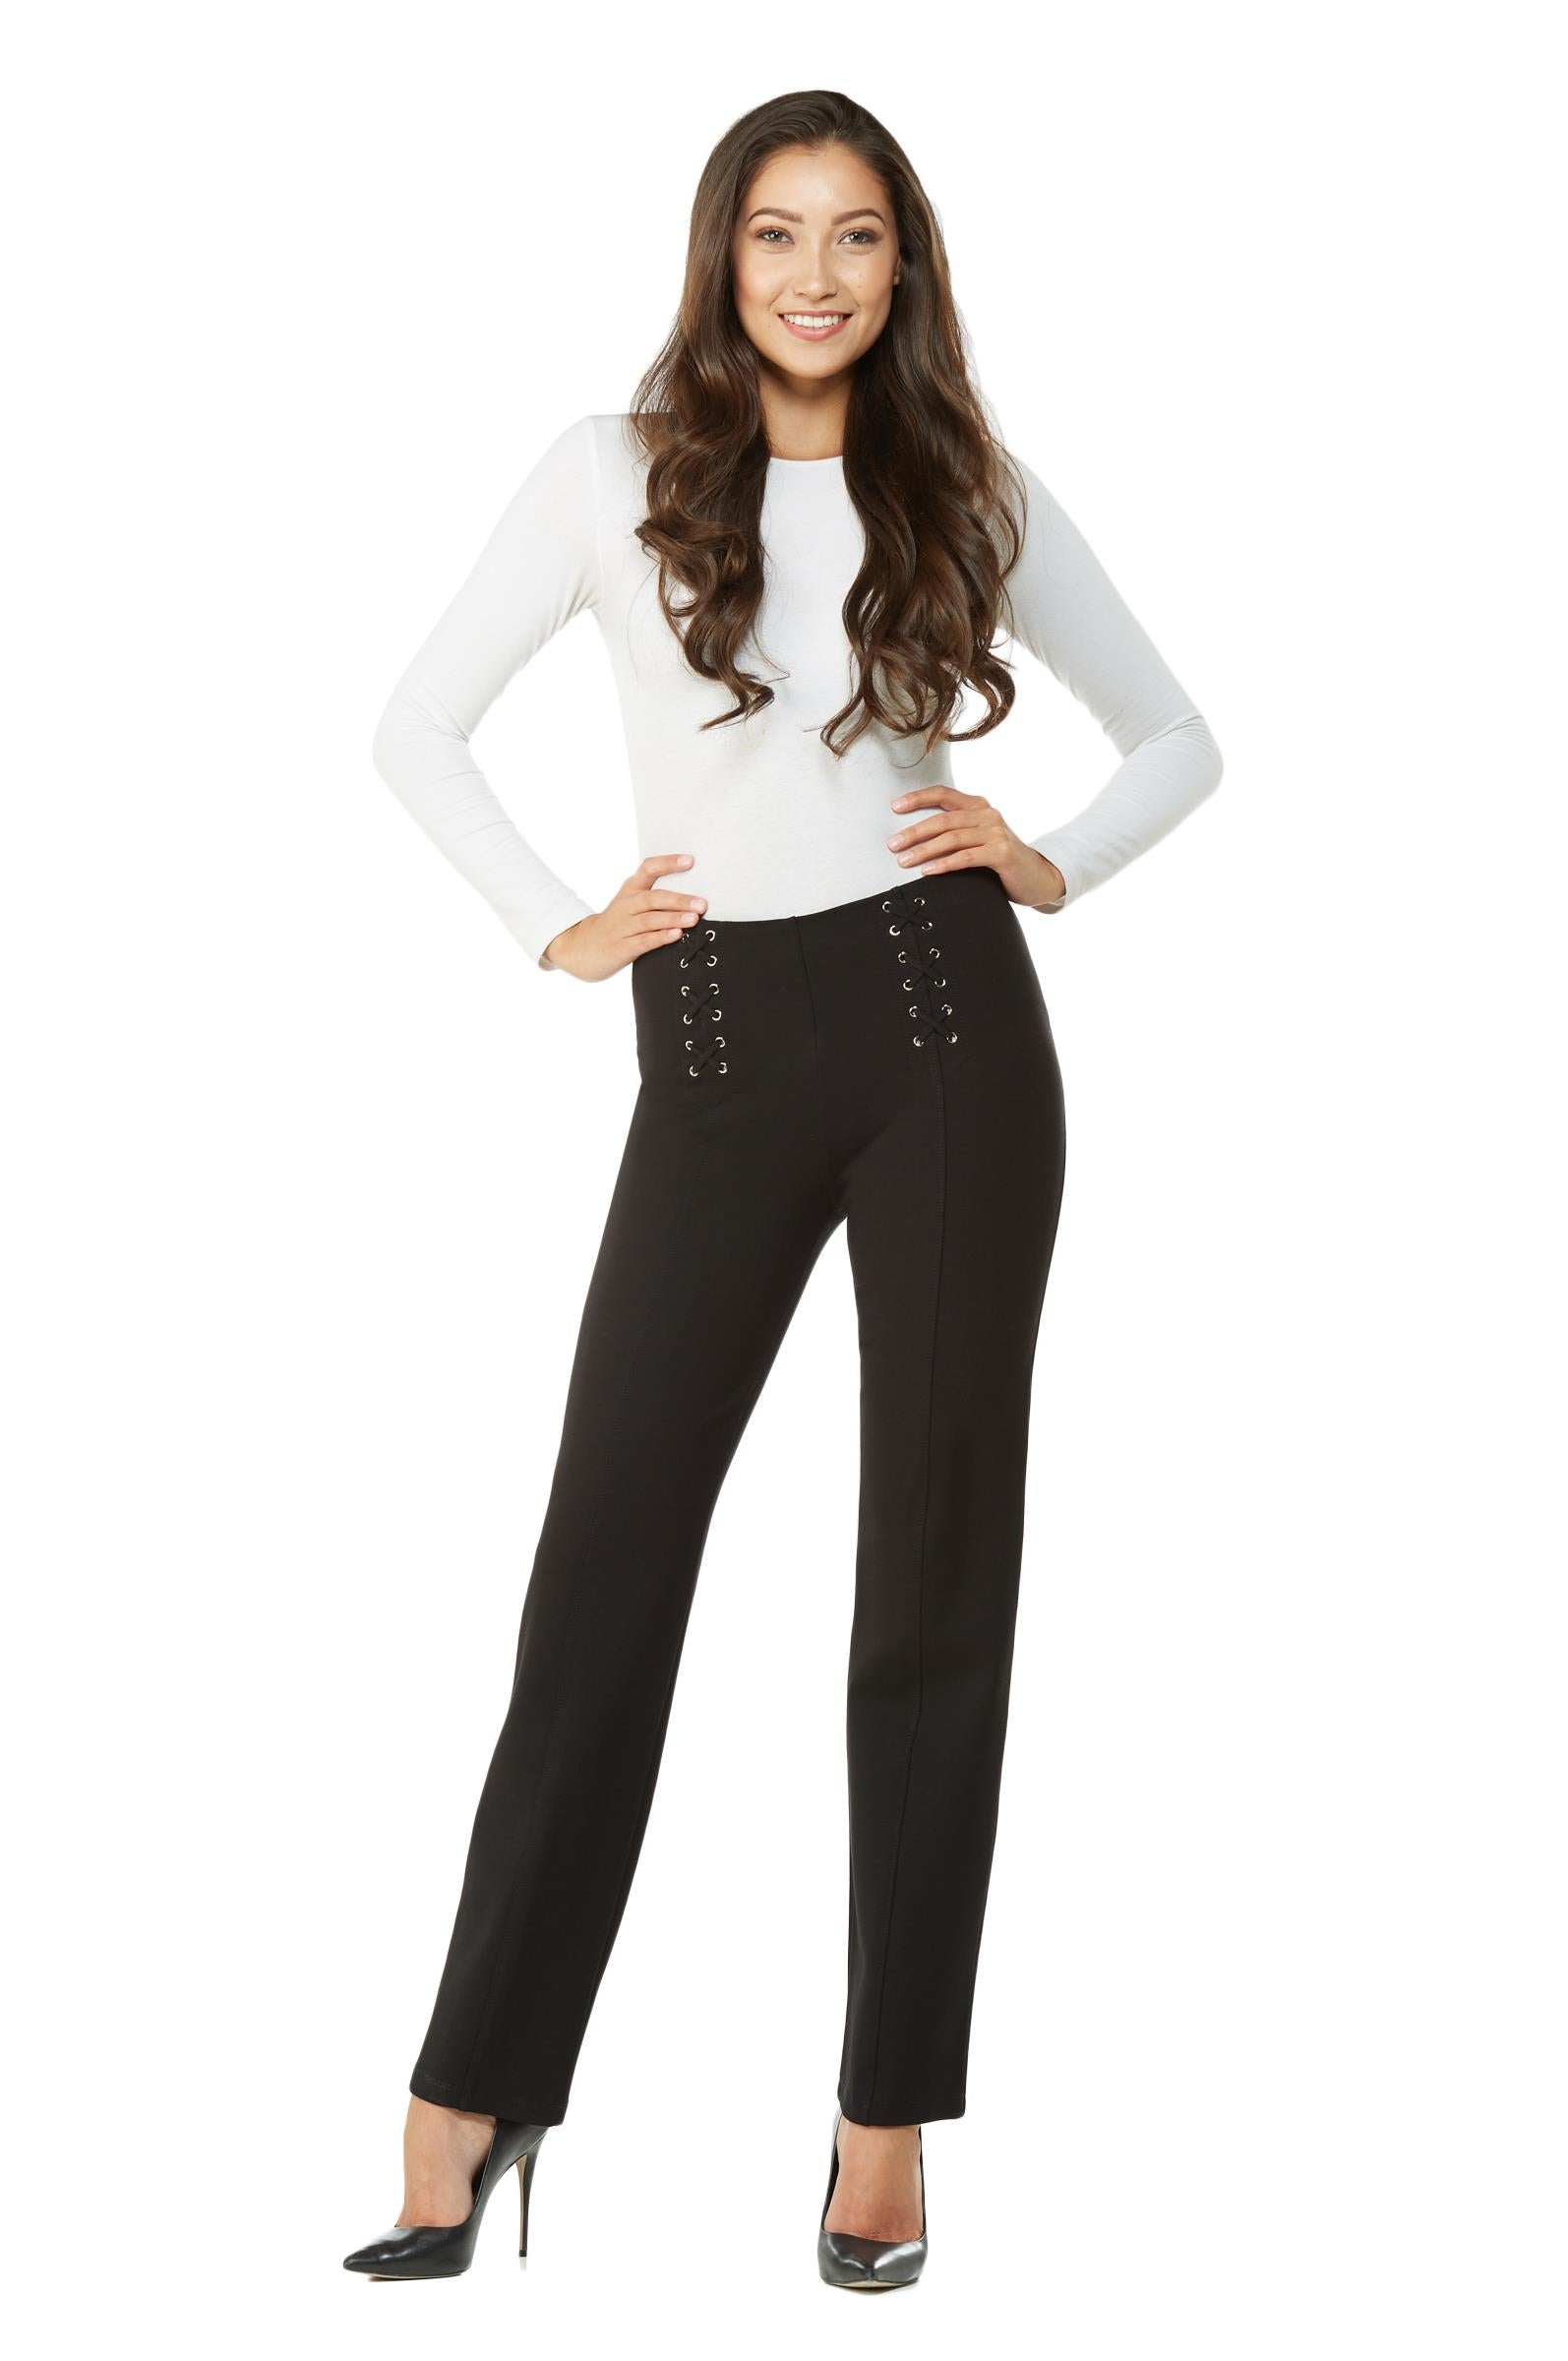 Full view woman wearing straight leg no-waist black pant w/lace-up detail on front left and right